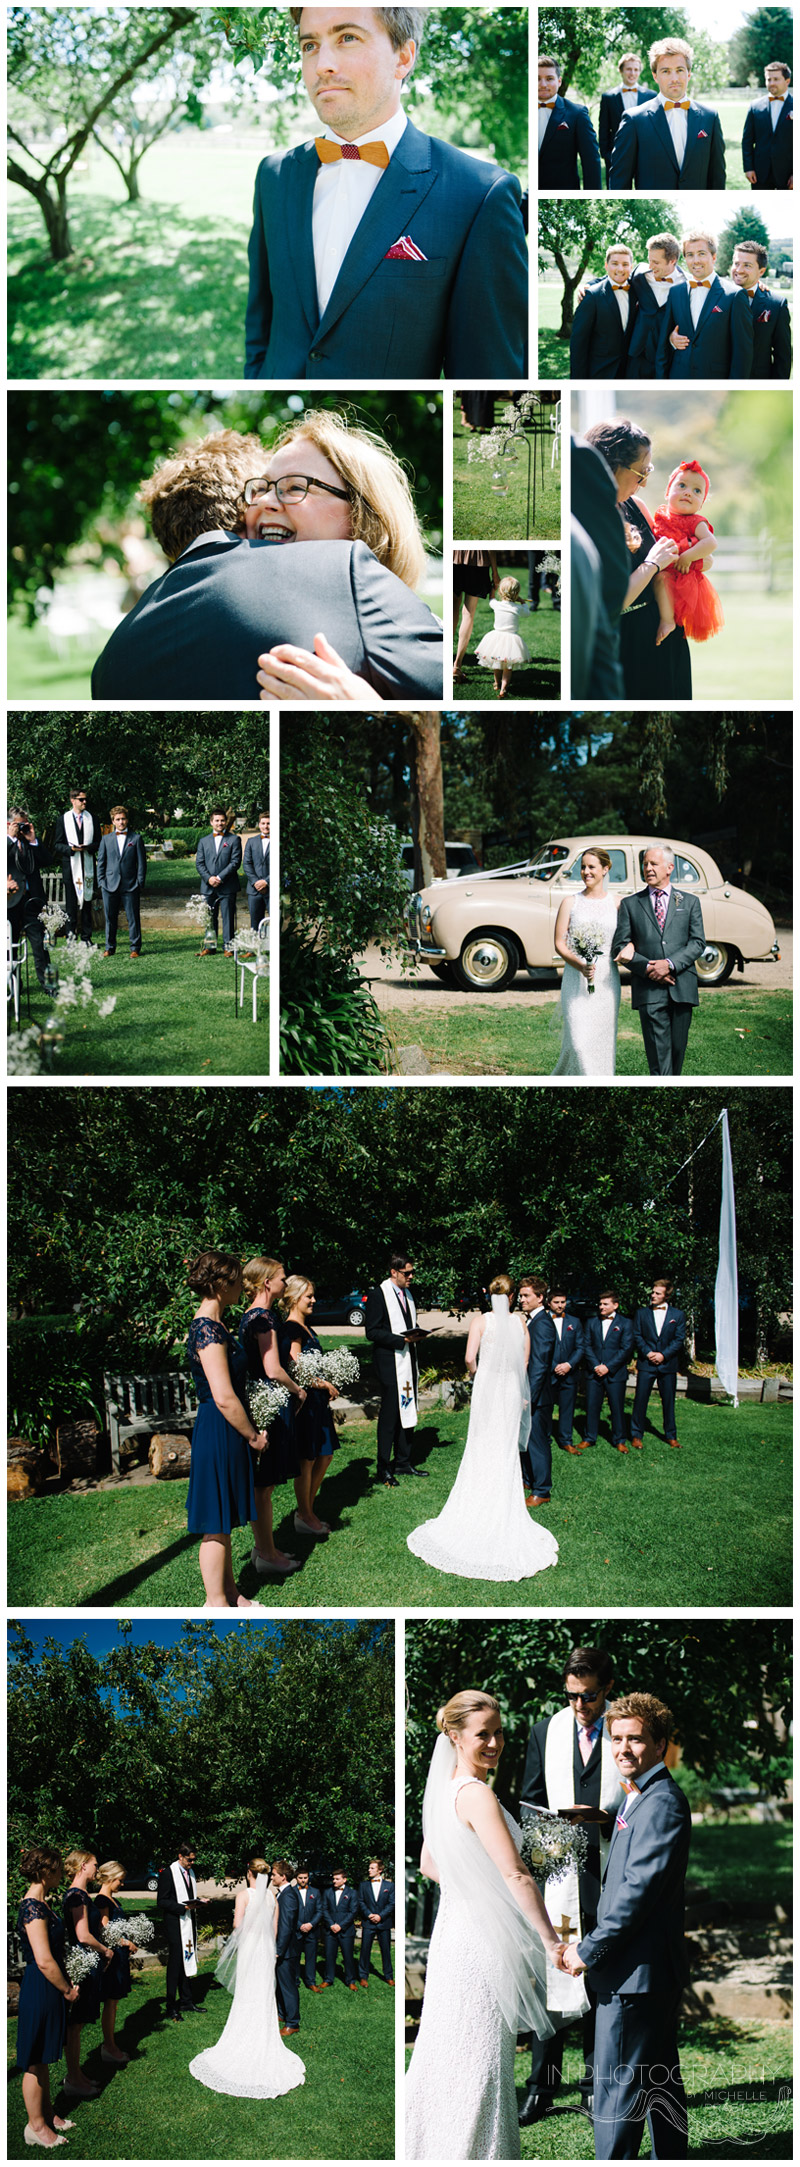 wedding ceremony at Red hill venue